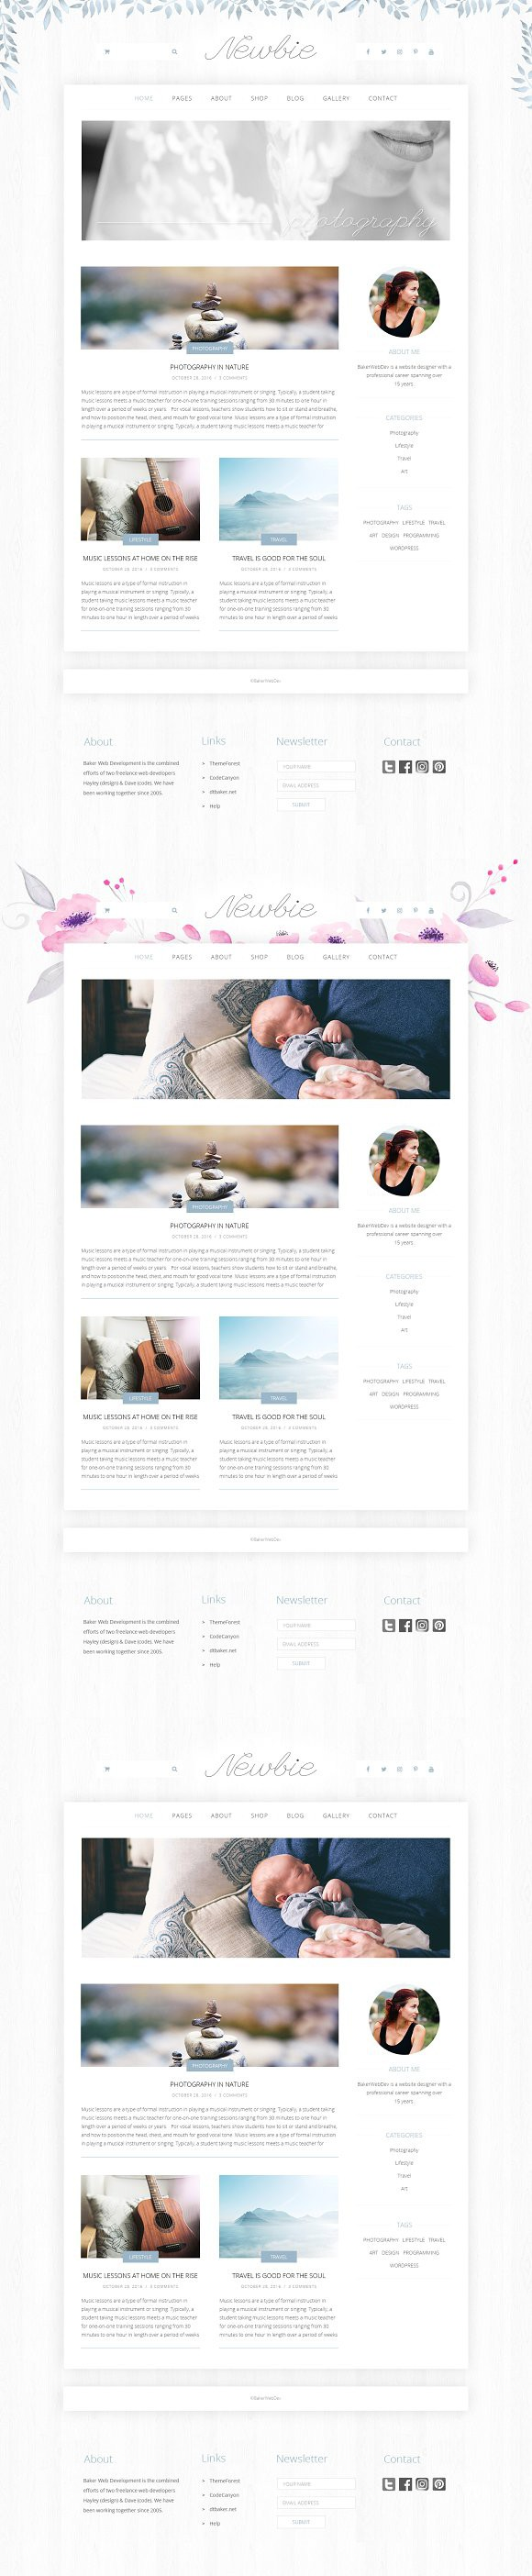 Newbie Website Template PSD. Website Templates | Website Templates ...